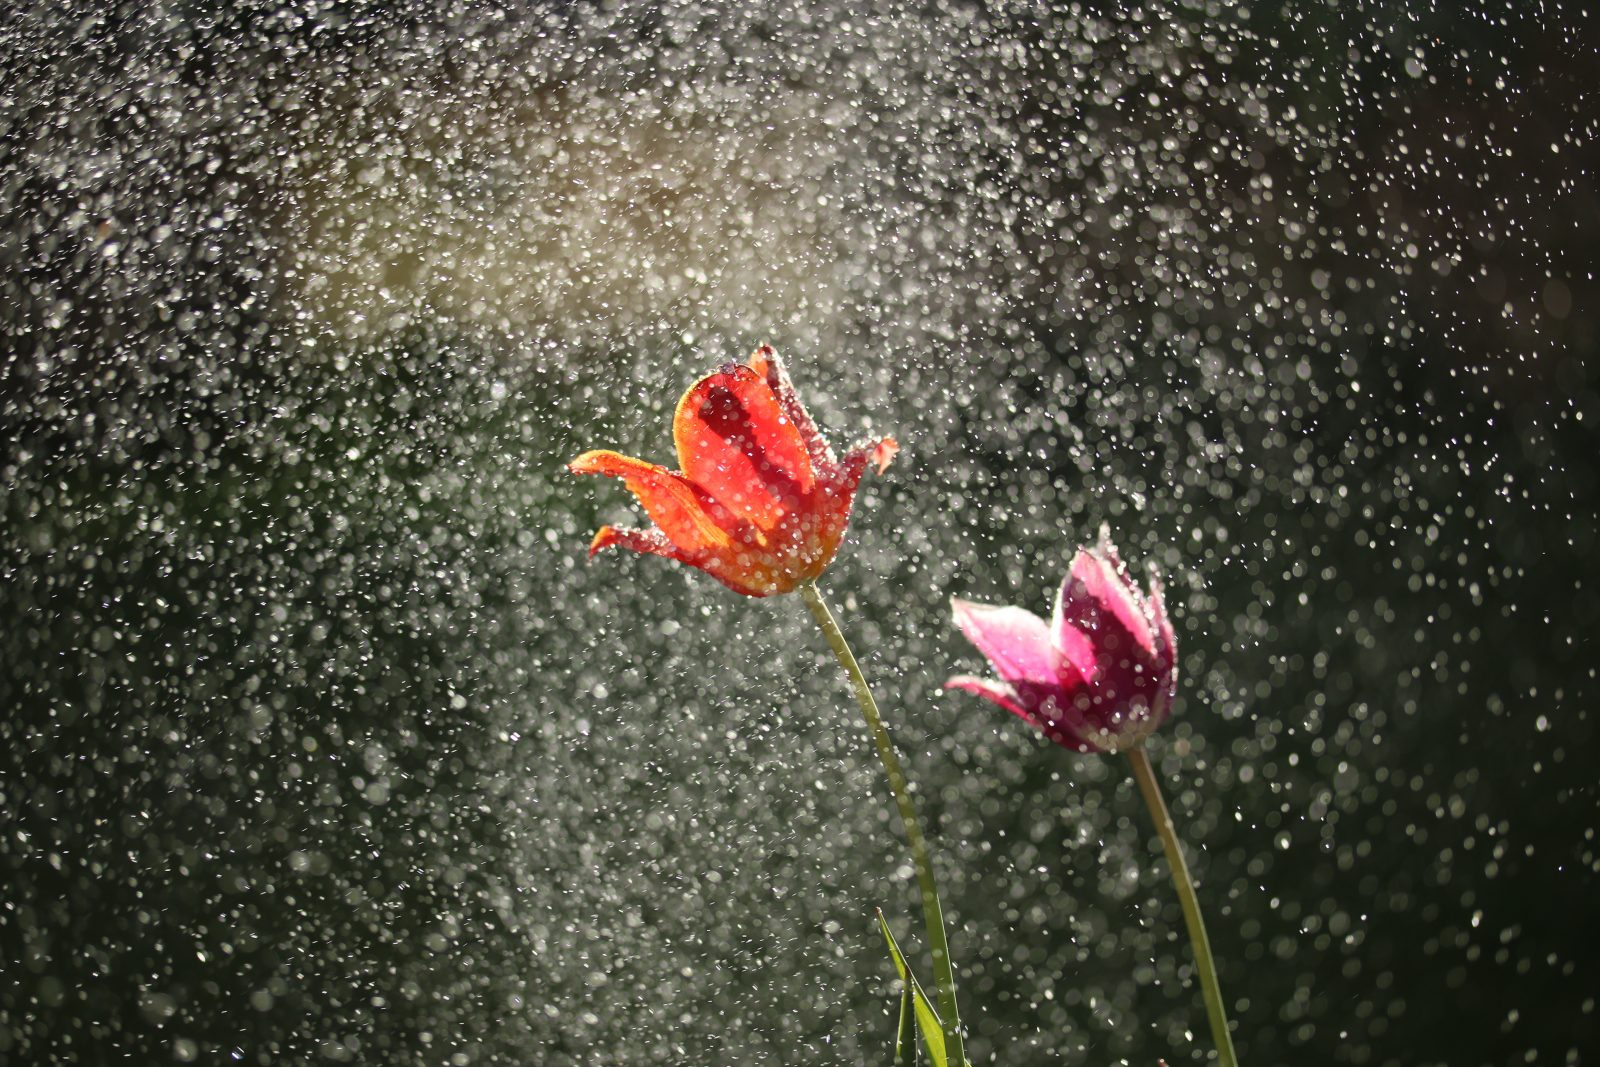 flowers in rain shower